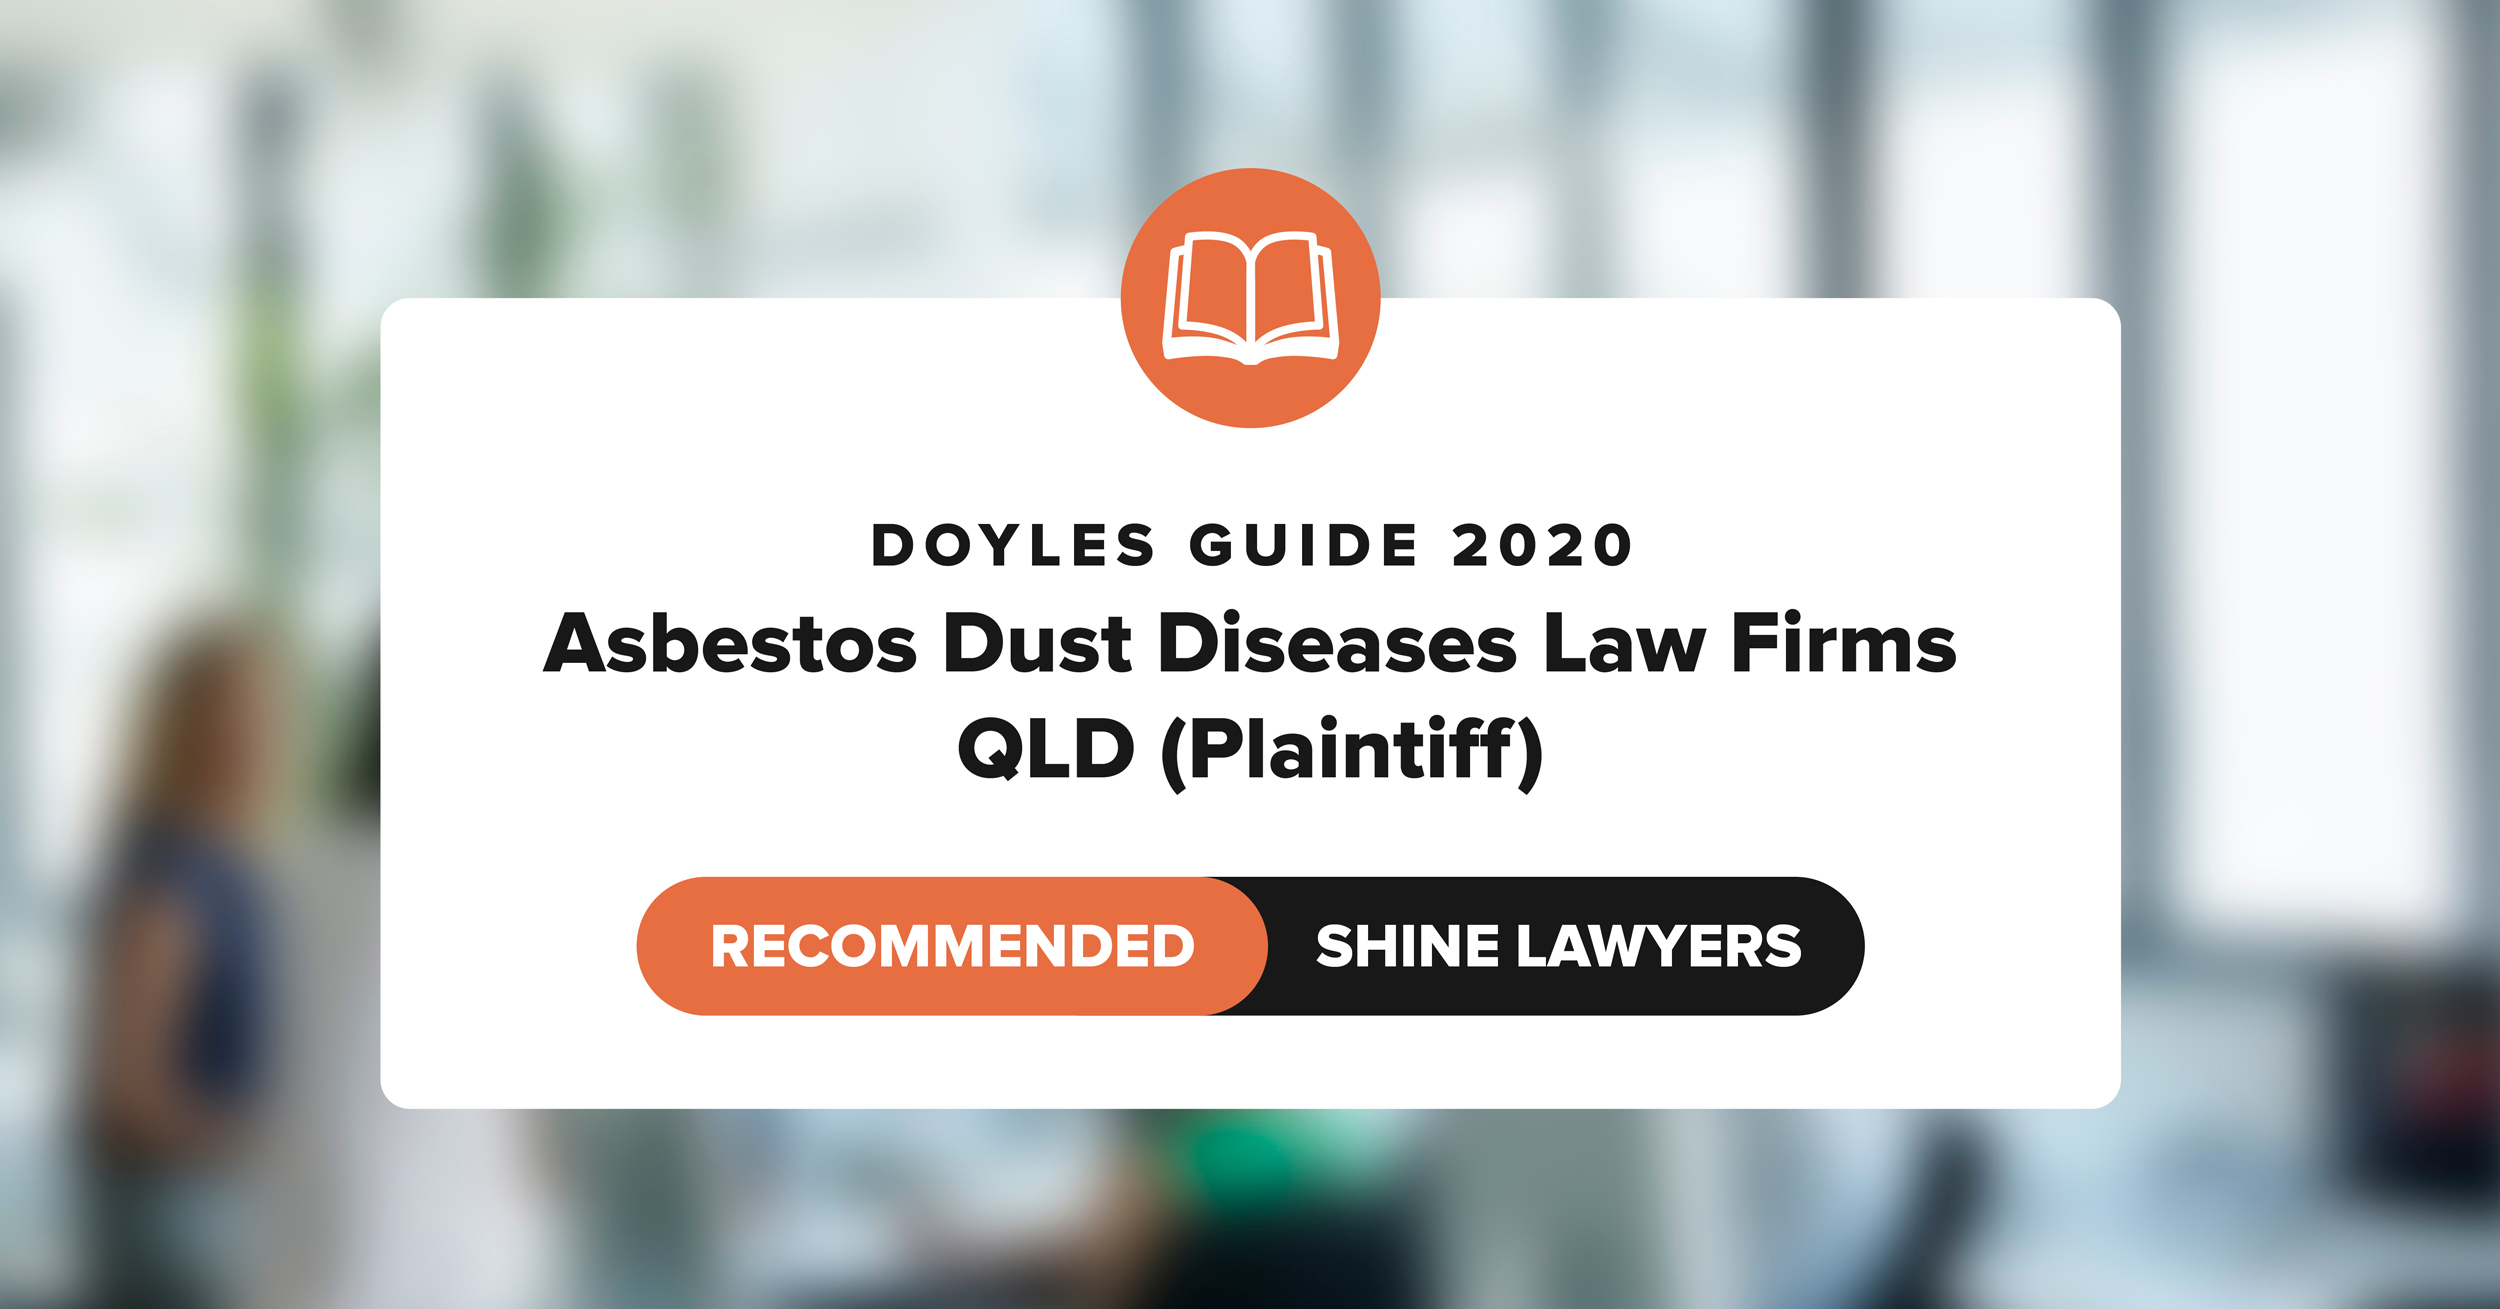 Doyles Guide 2020 Recommended Asbestos Dust Diseases Law Firms QLD